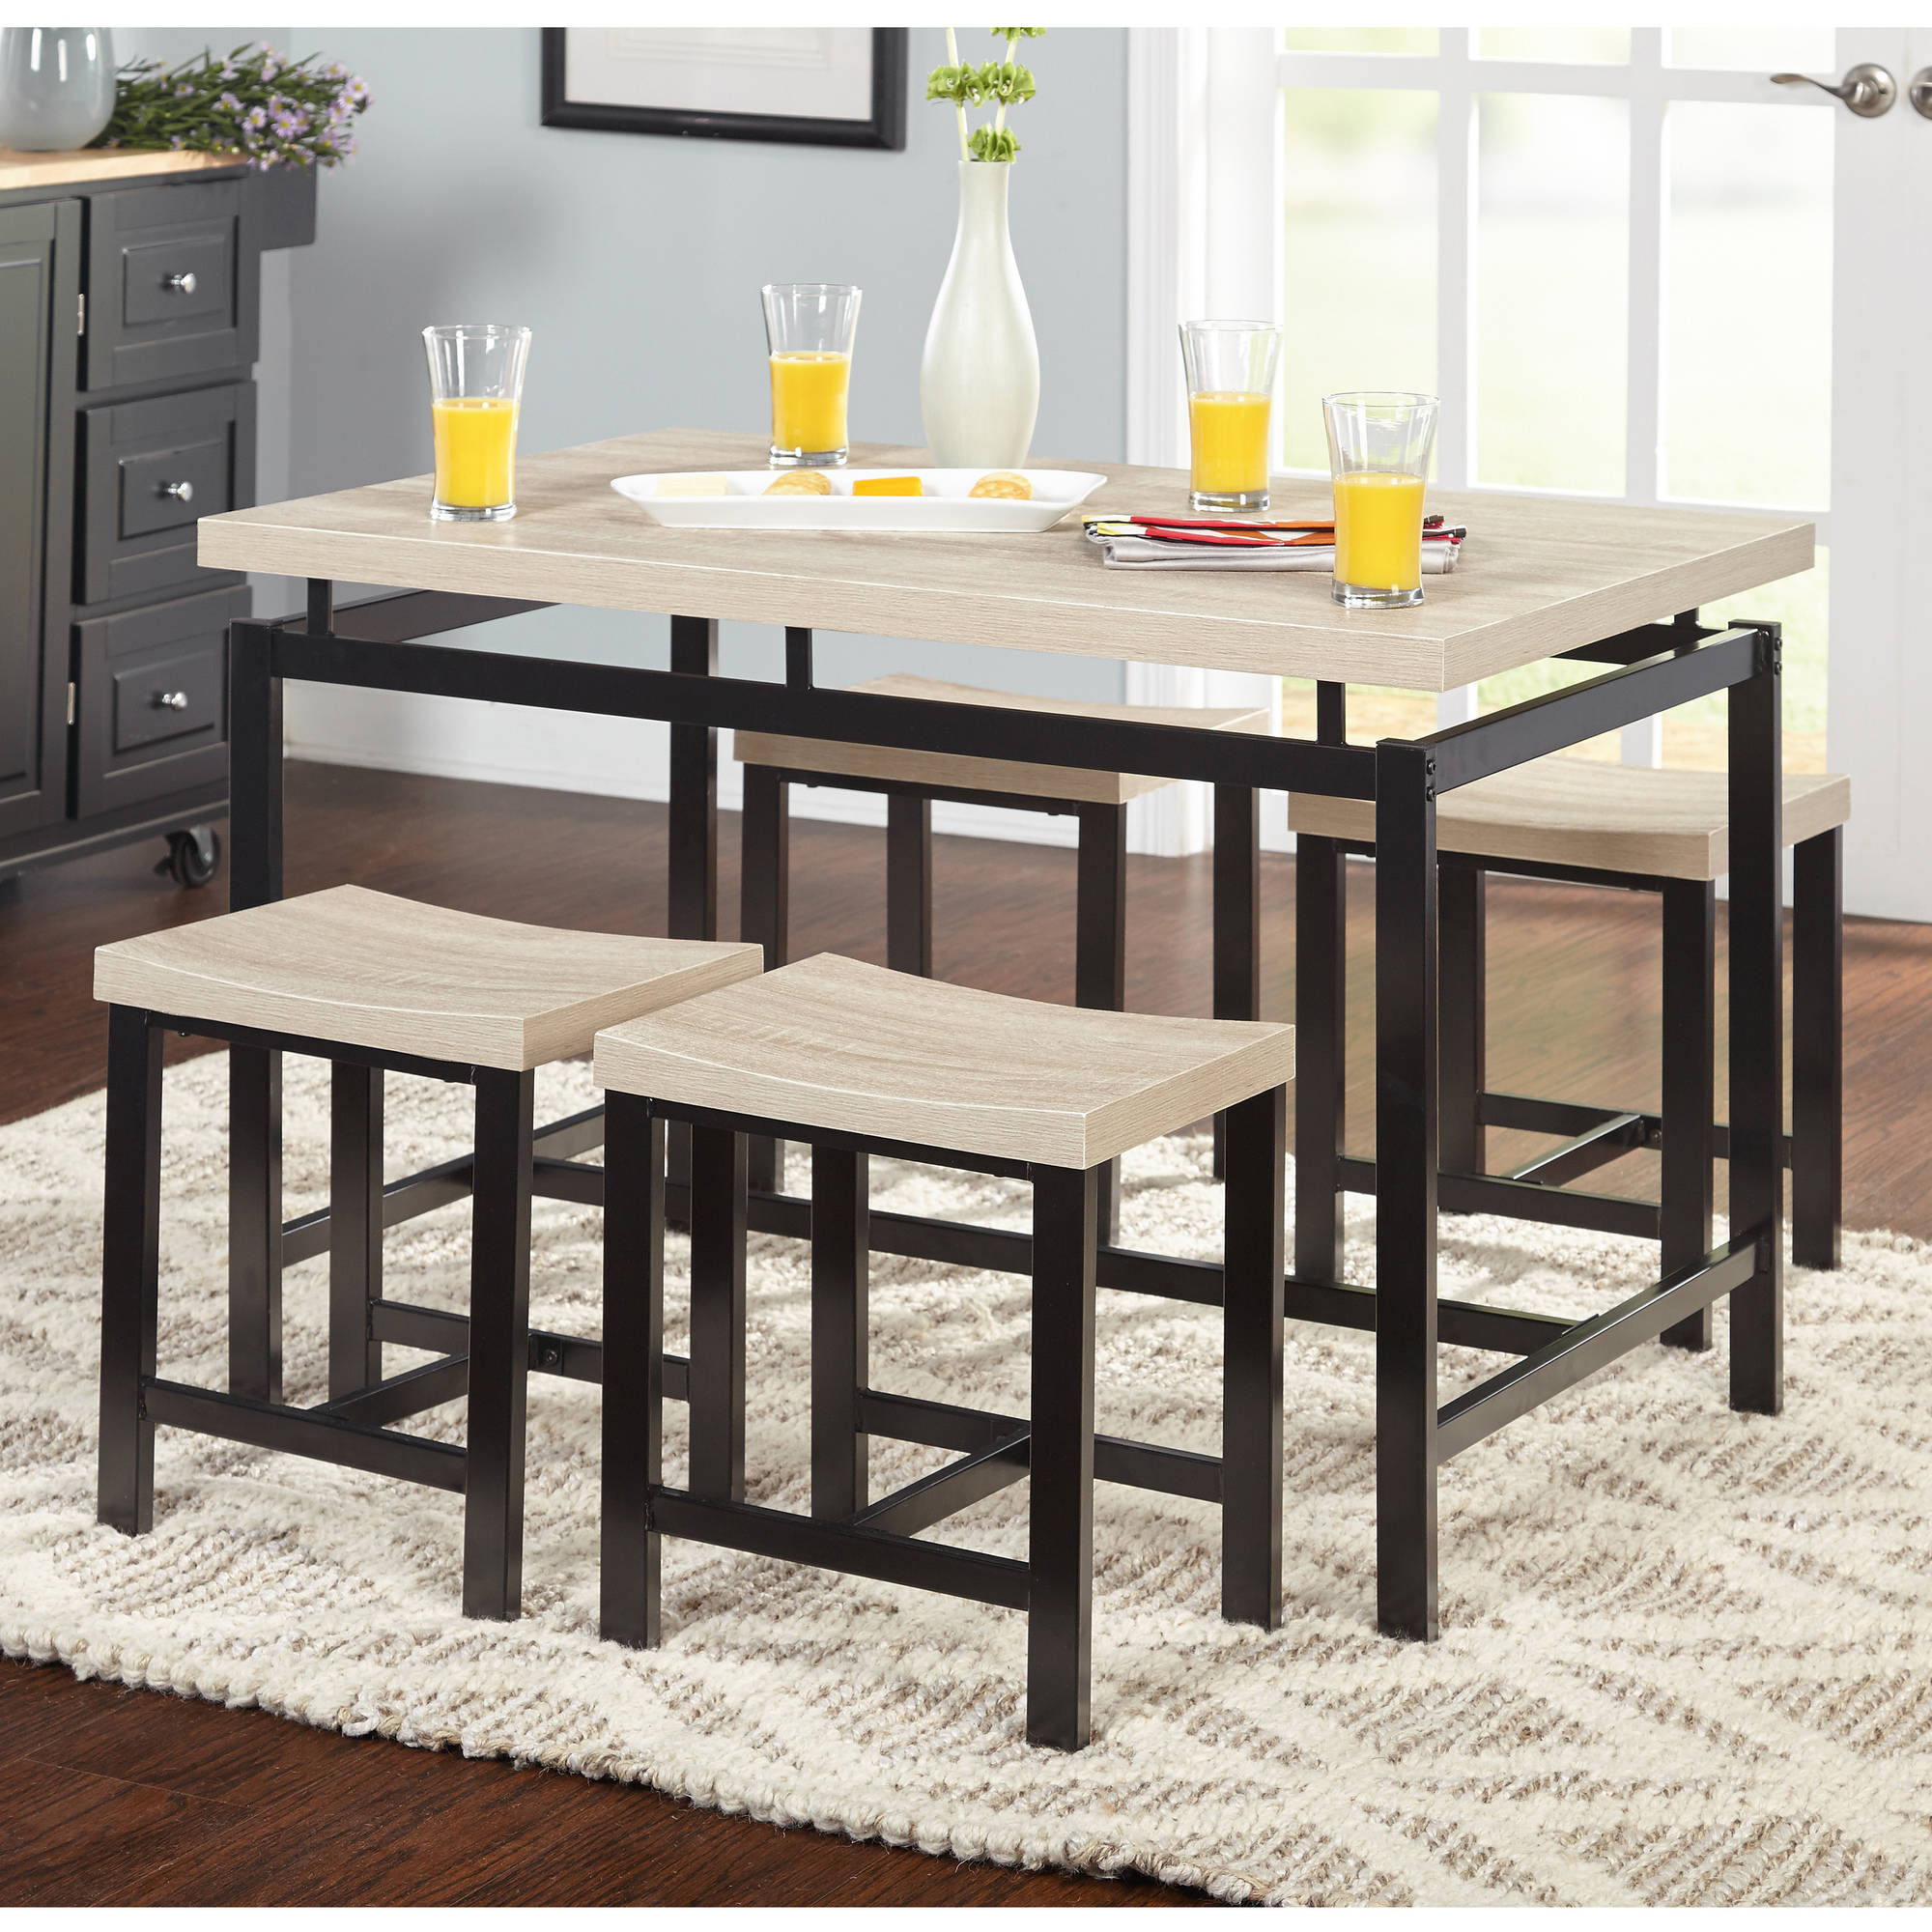 5-Piece Delano Dining Set, Natural - Walmart.com